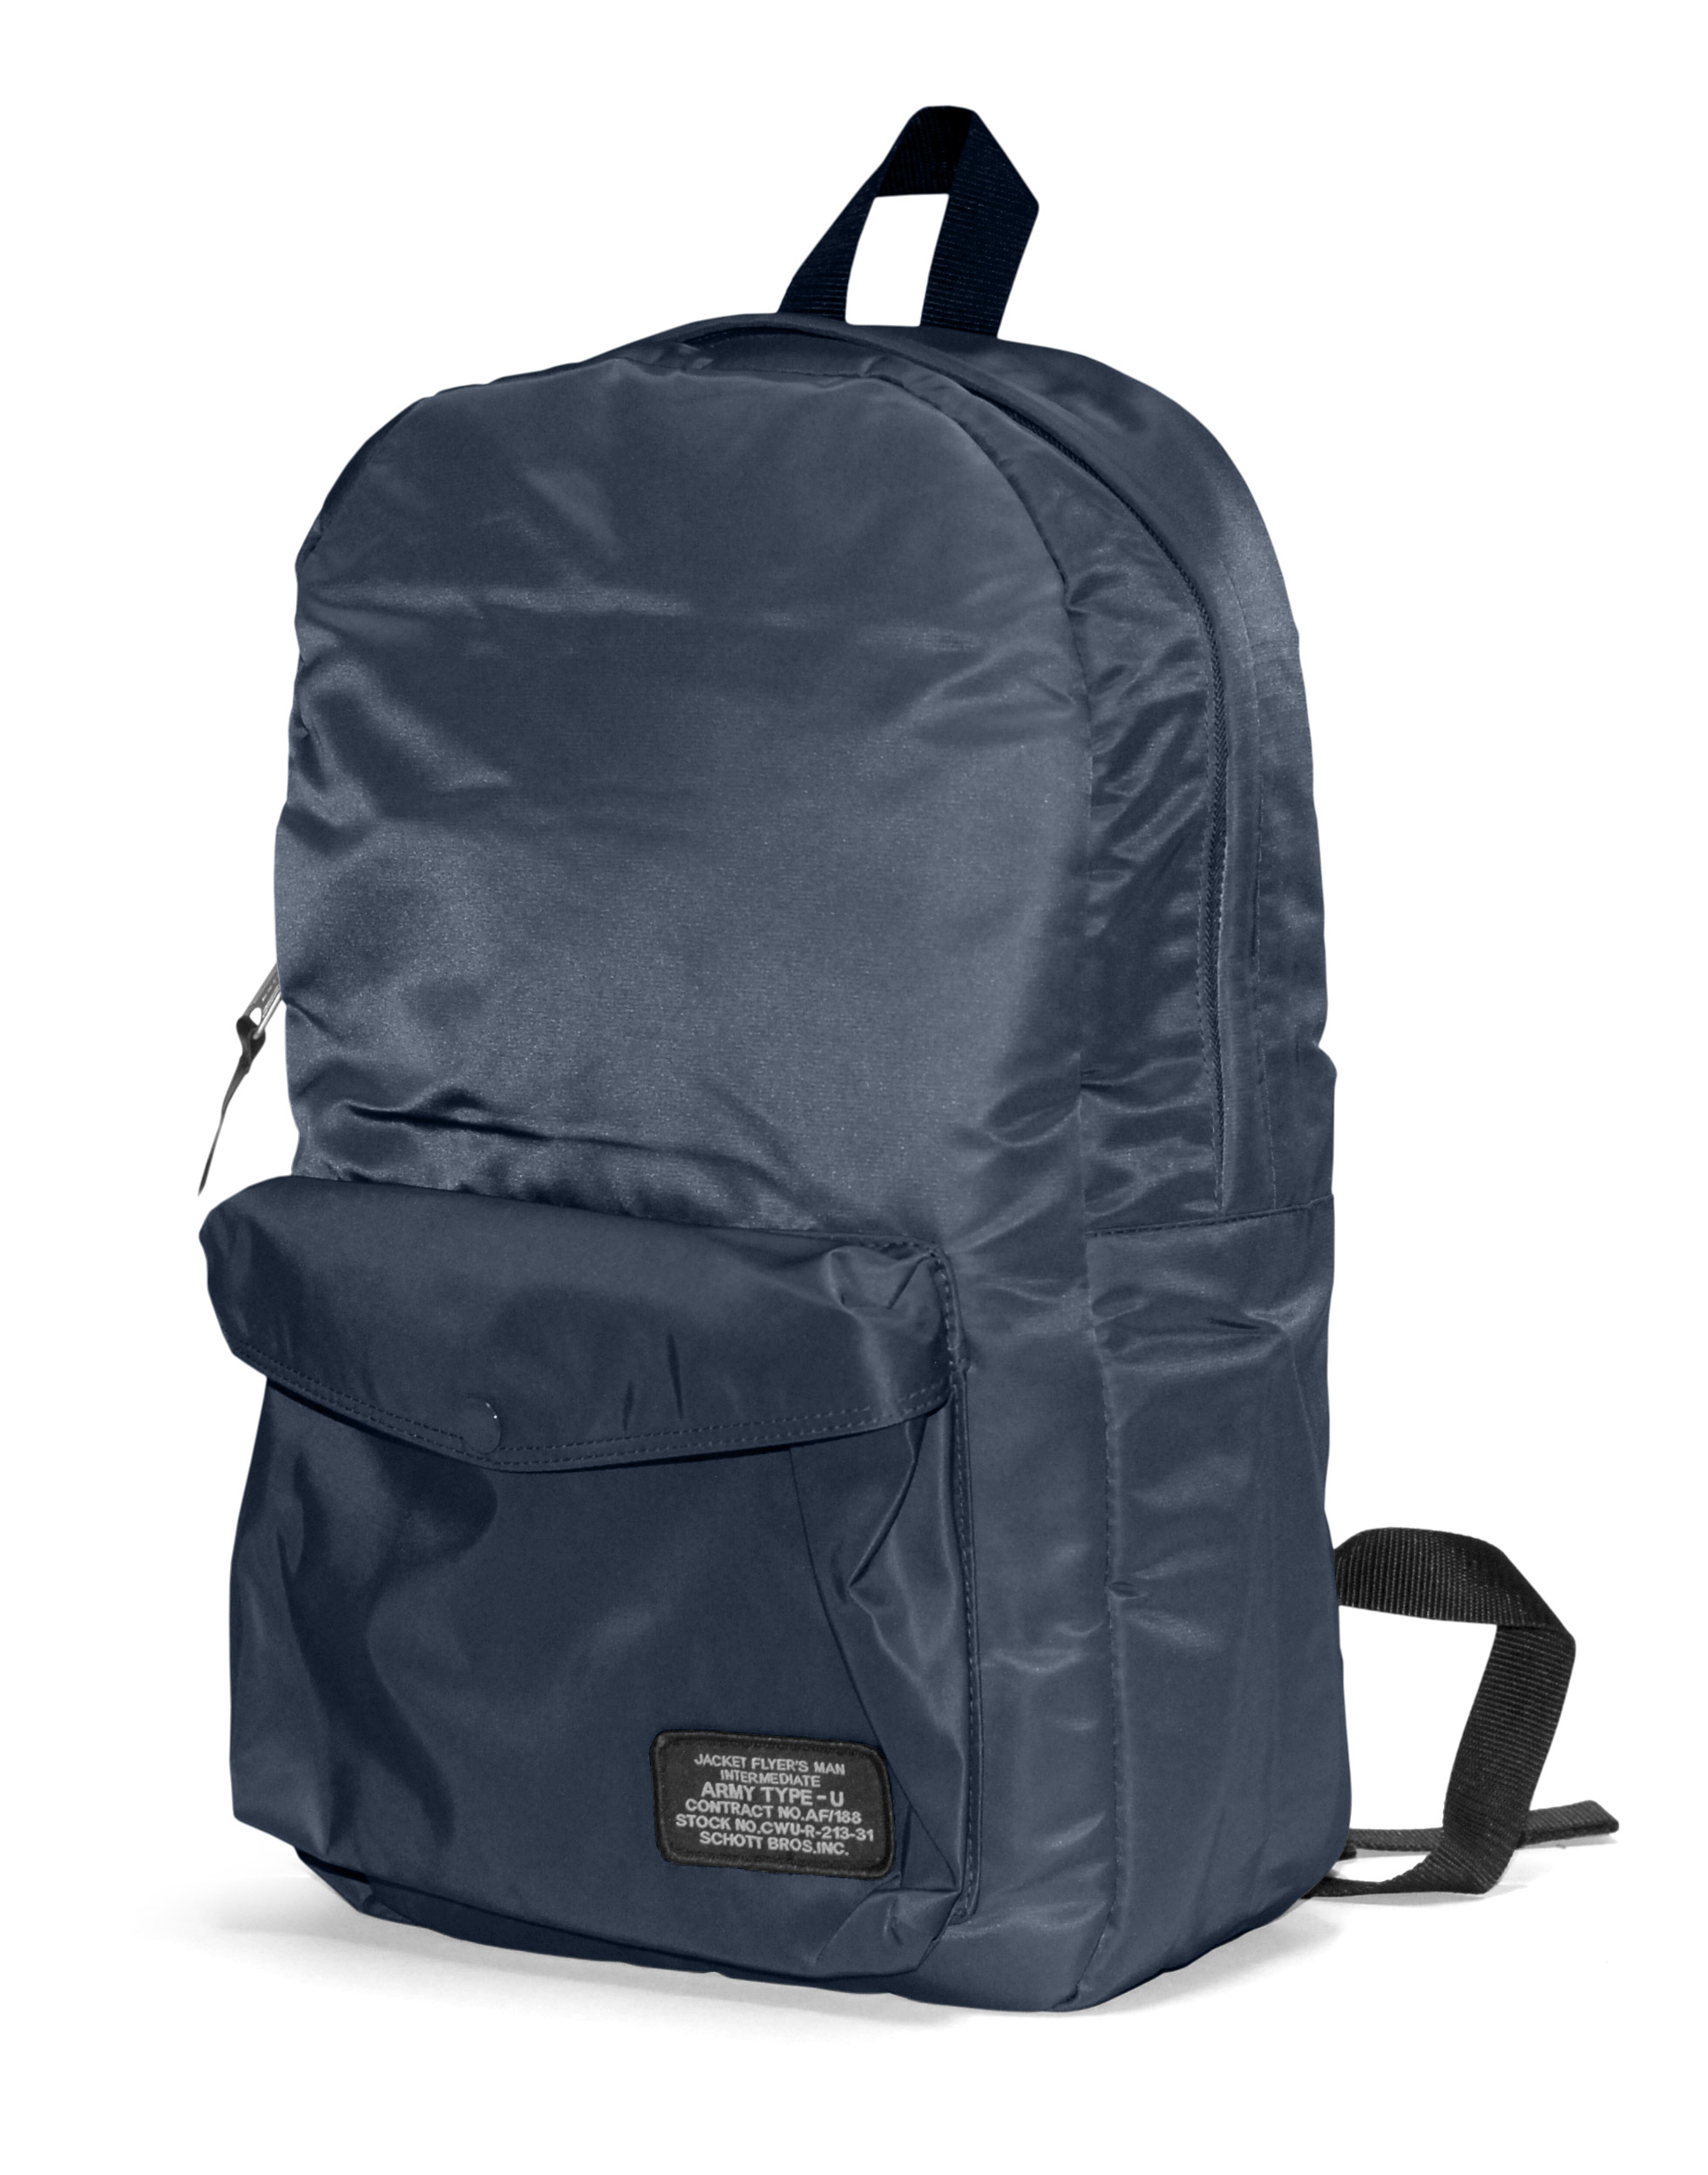 Schott N.Y.C. Flight Satin Back Pack